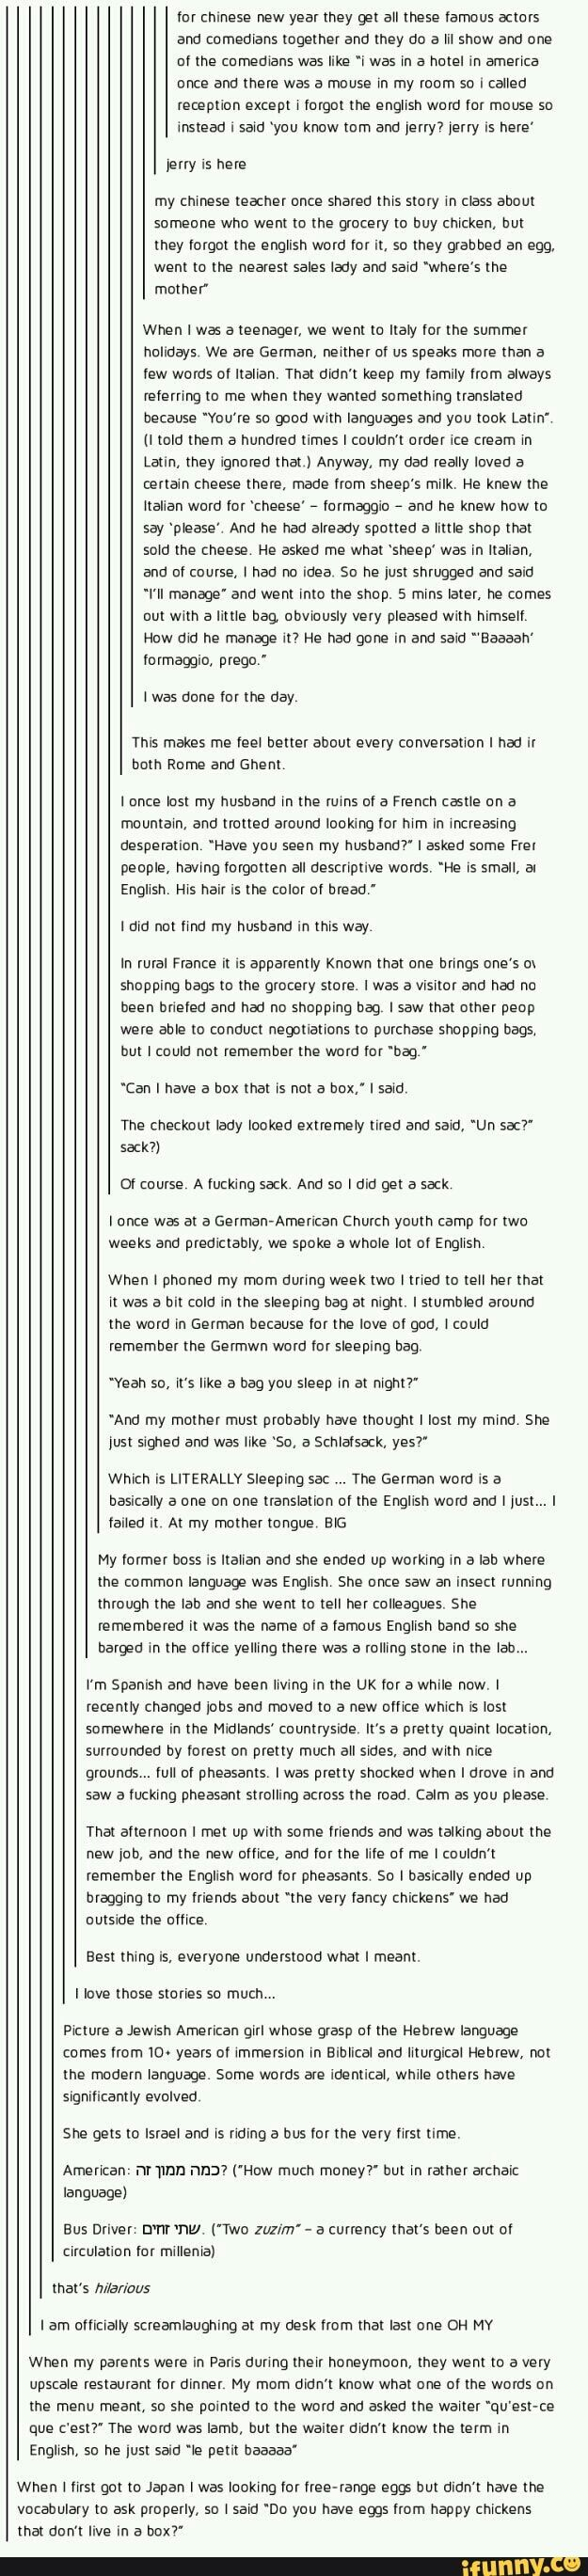 This is amazing XD But to be fair, I'm American born and raised with very little foreign languages under my belt and one of the things I do most often is stumble over my English and forget specific words I need. English is hard